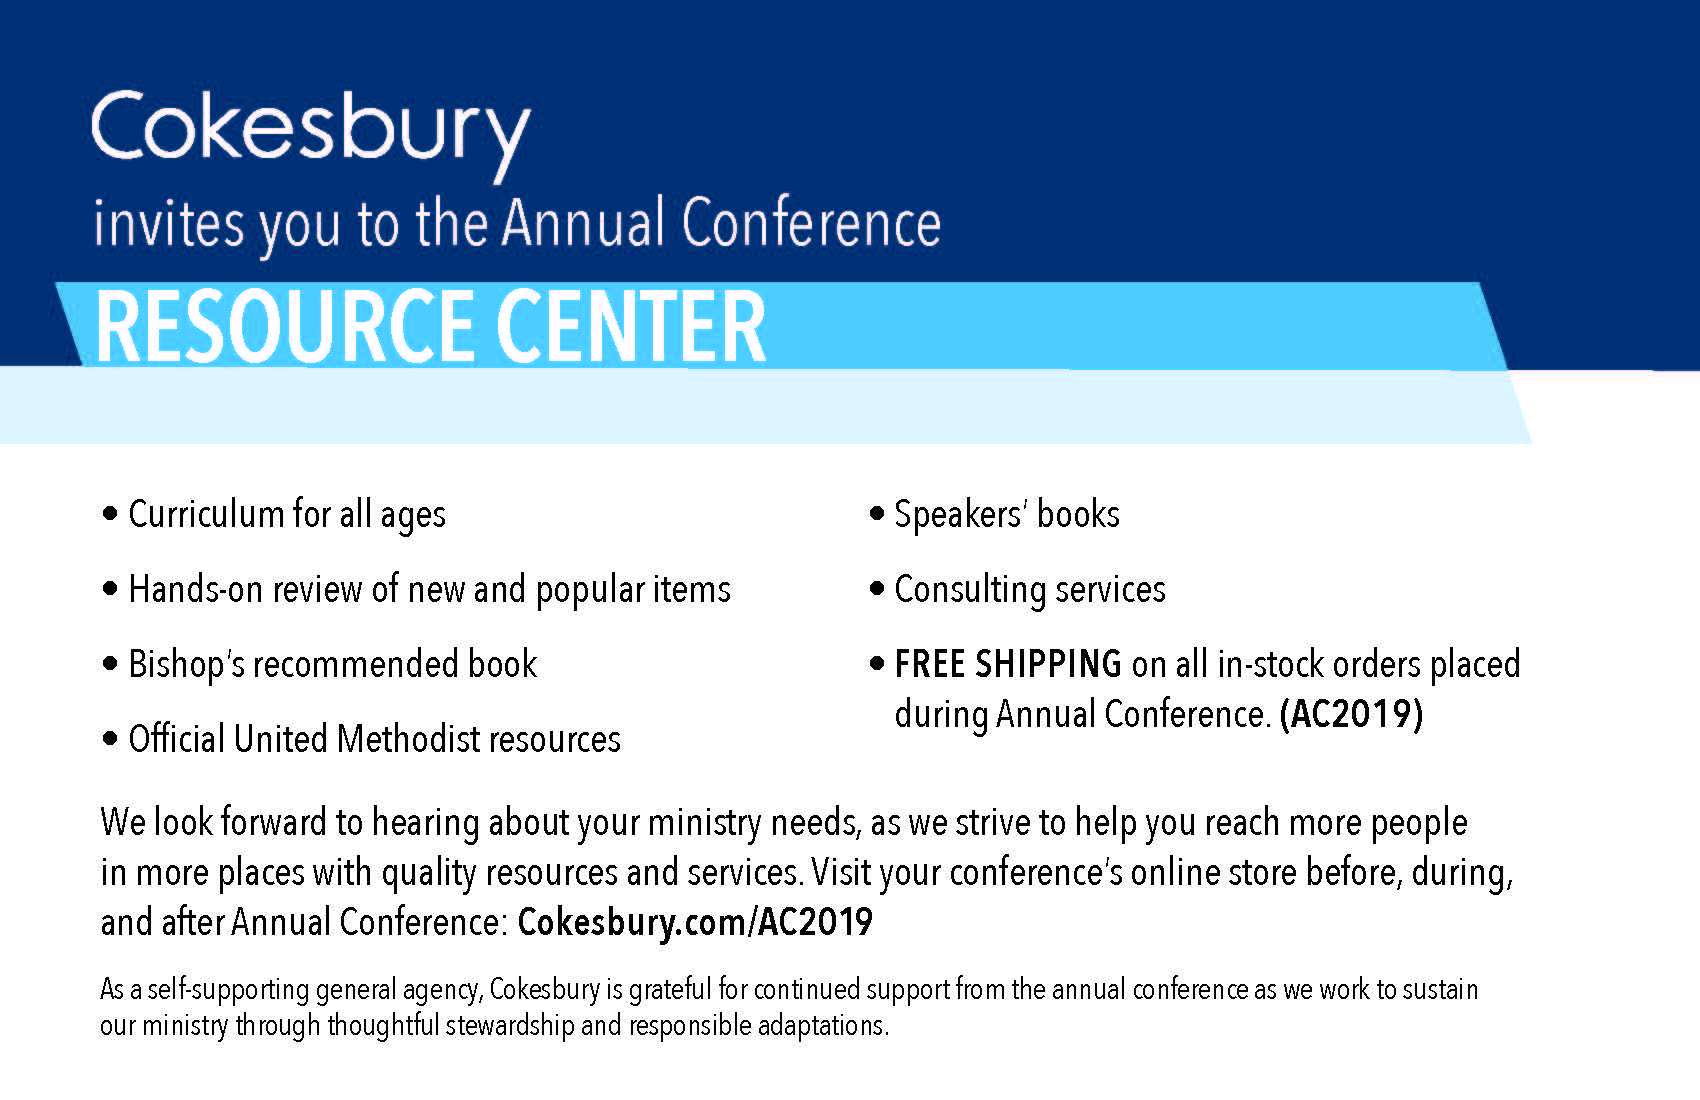 2019-HiRes-AC Cokesbury Ad for Conference Offices